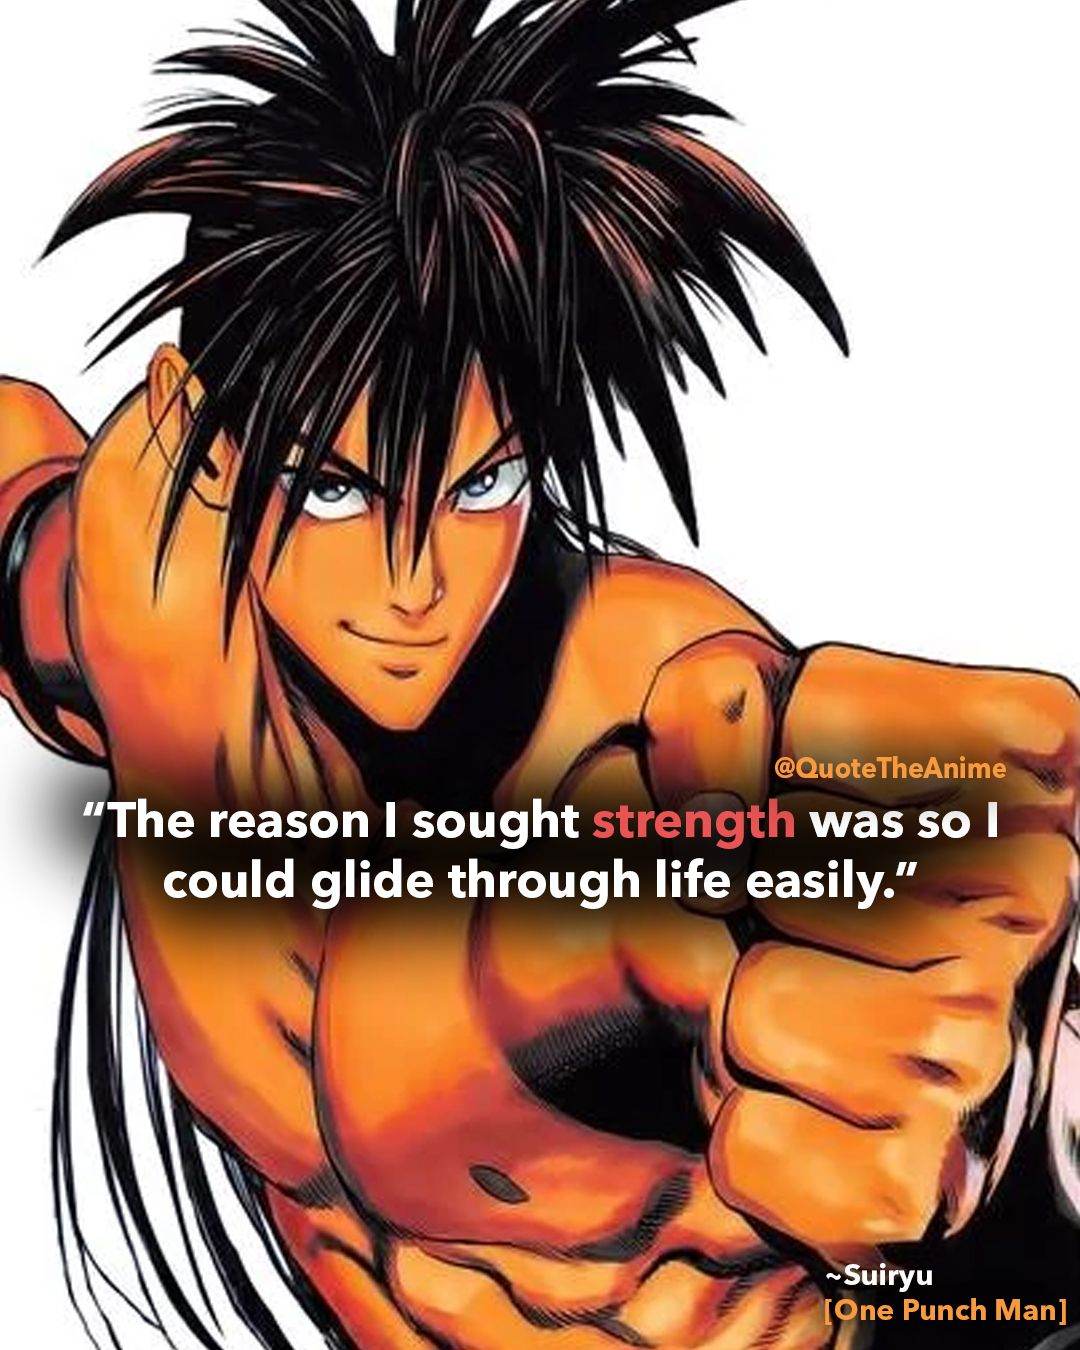 23 Powerful One Punch Man Quotes Wallpaper Qta One Punch Man One Punch One Punch Man Anime